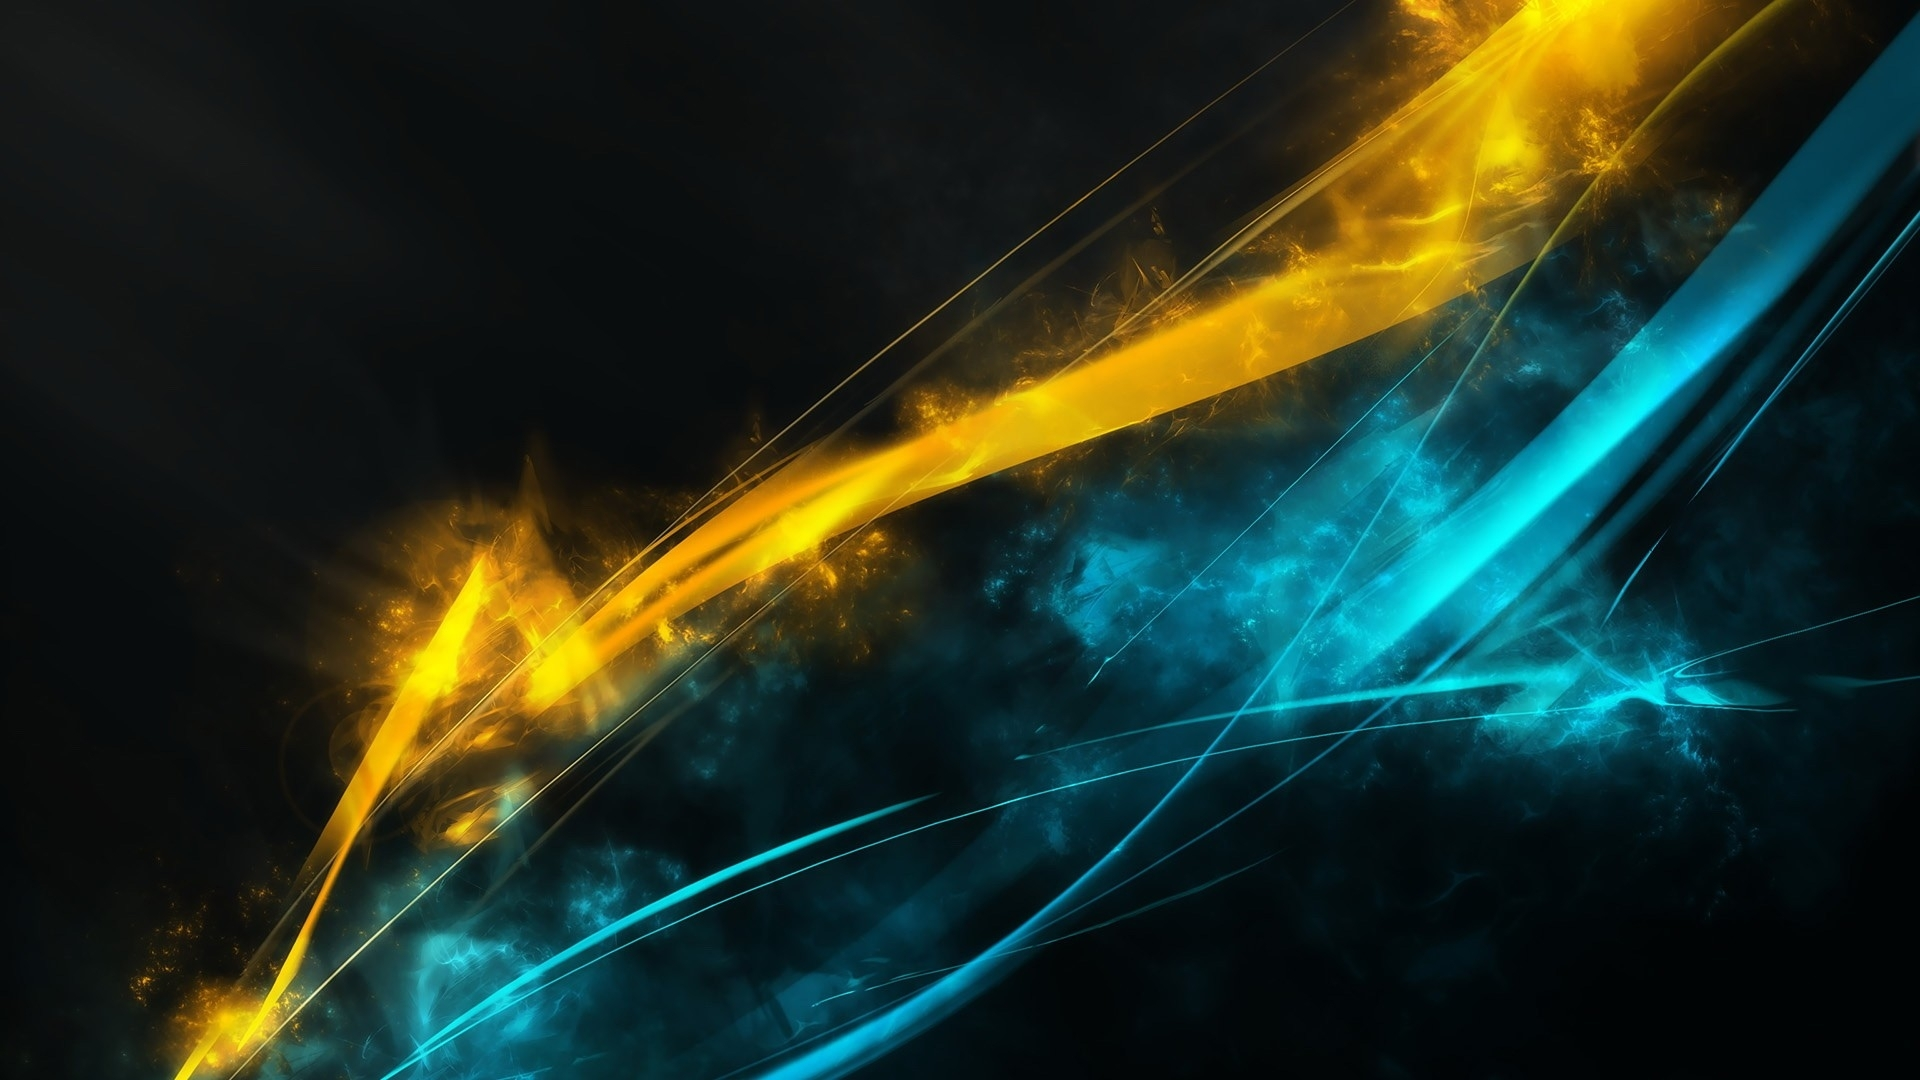 abstract full hd wallpaper and background image   1920x1080   id:462549